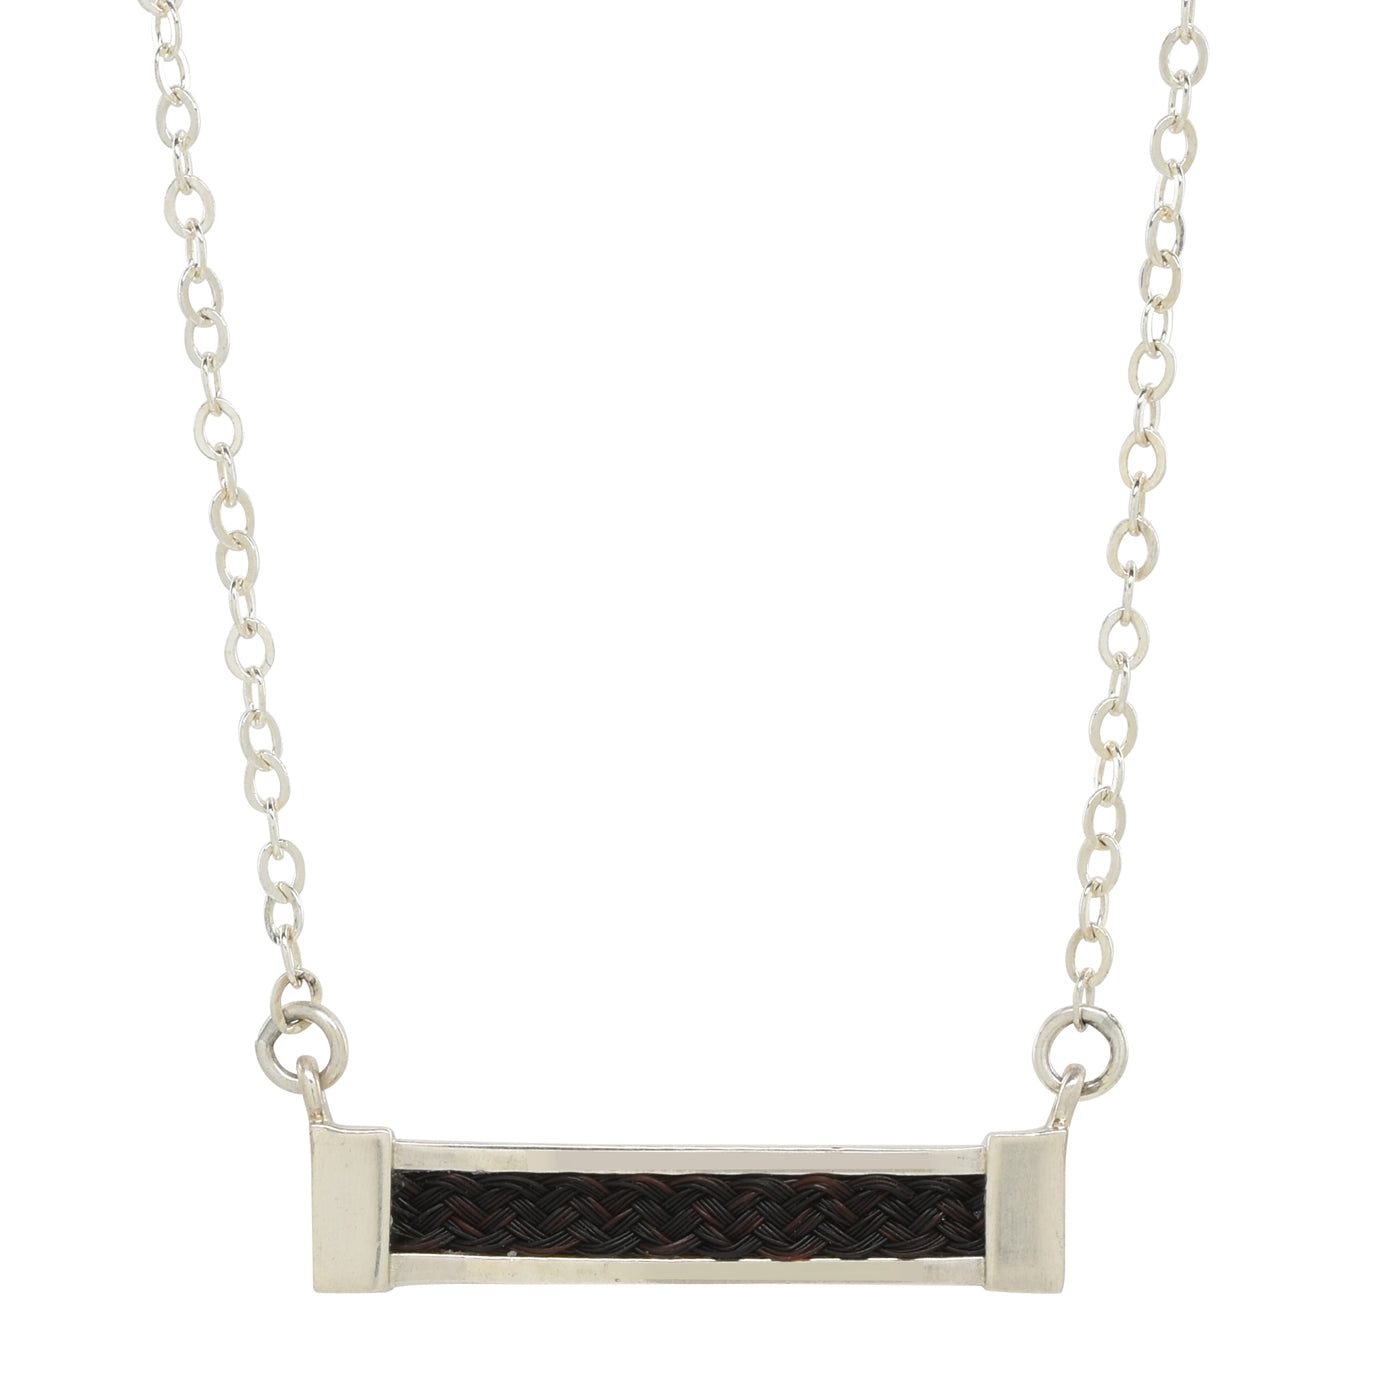 small horizontal bar necklace with inset horsehair braid